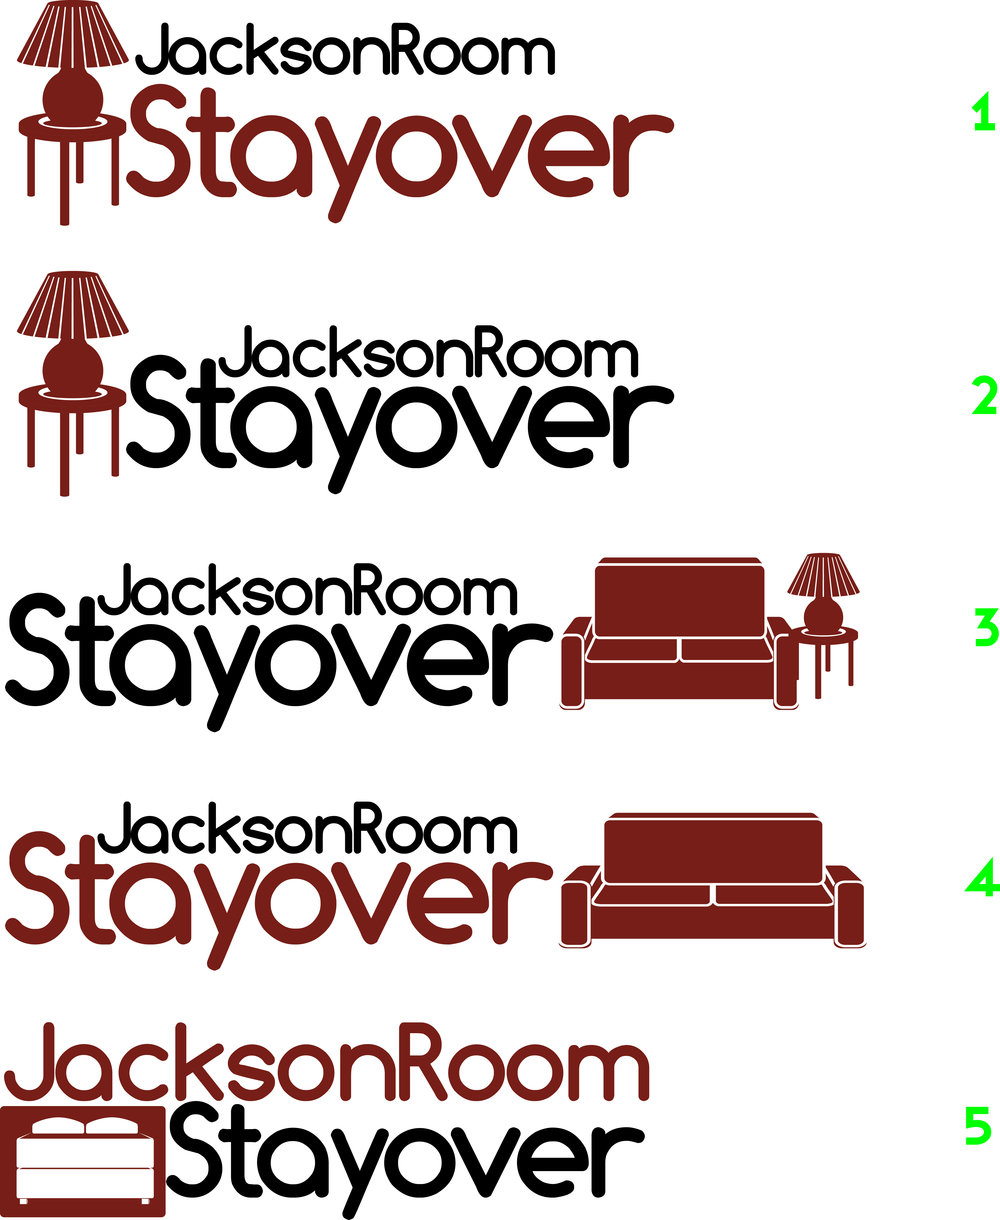 JacksonRoom Stayover logo1.jpg